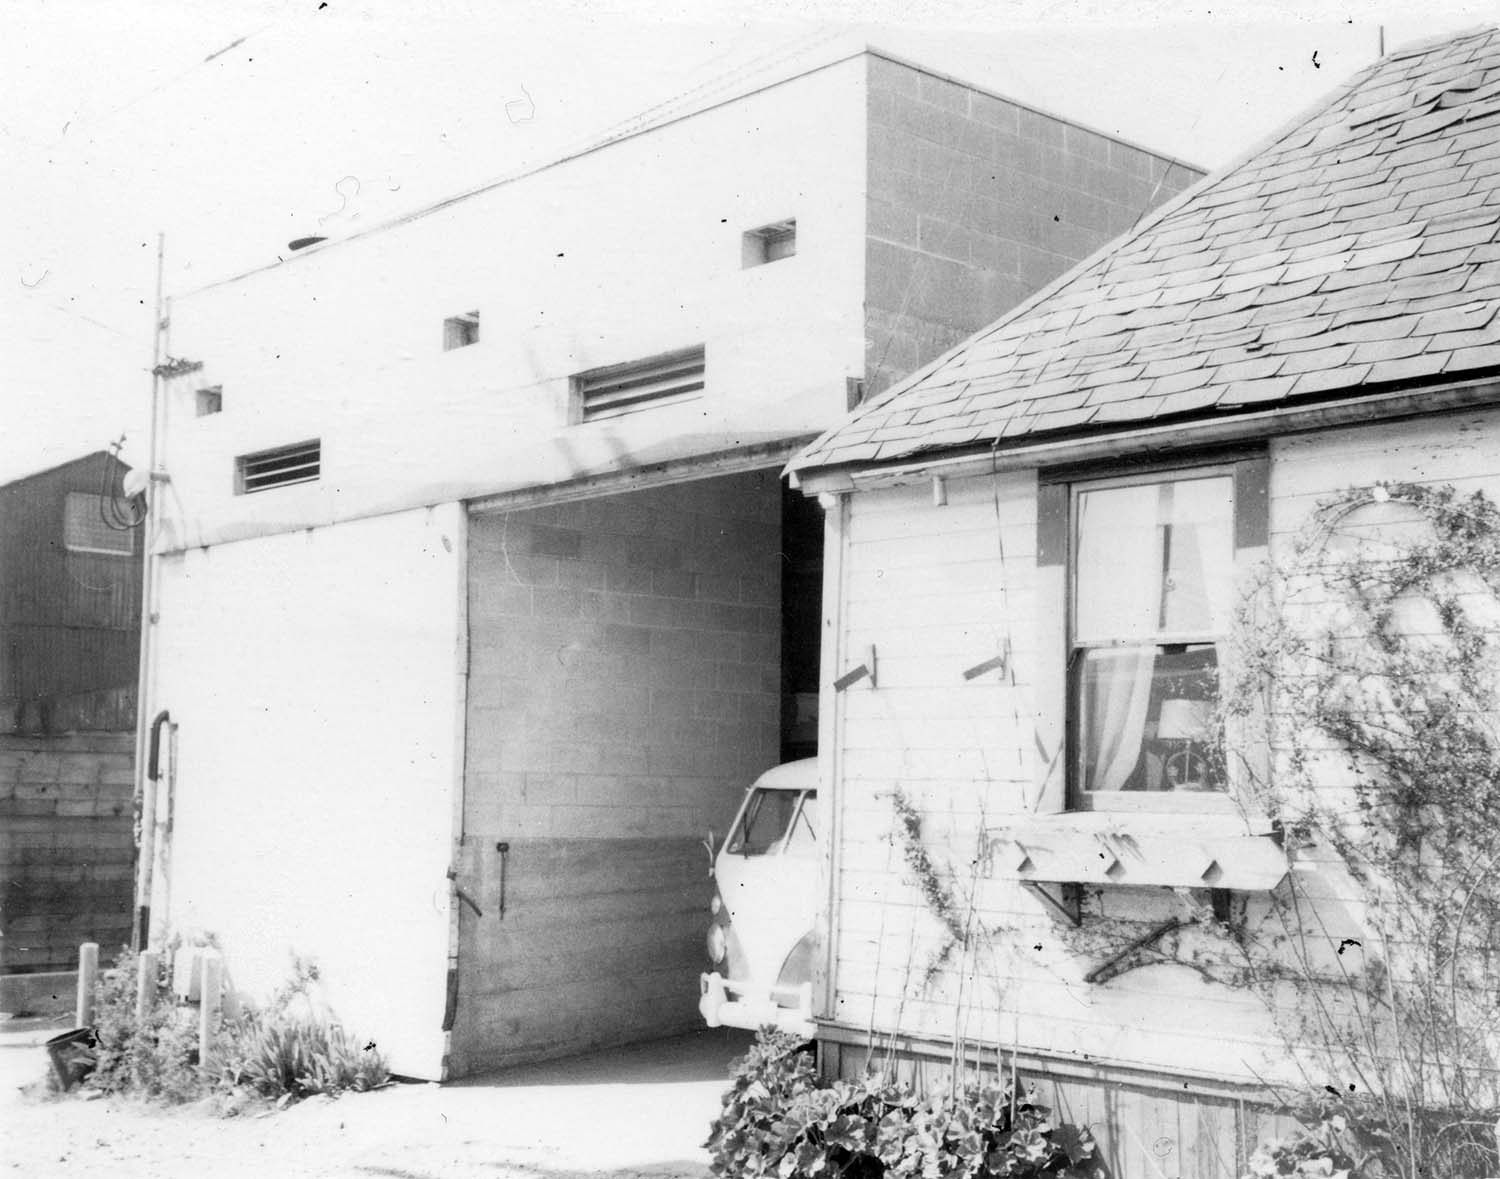 274 - 278 Union Street, back, 1973. Photograph shows Union Laundry and portion of a house (back of 278 Union Street). Reference code COV-S168-: CVA 203-67